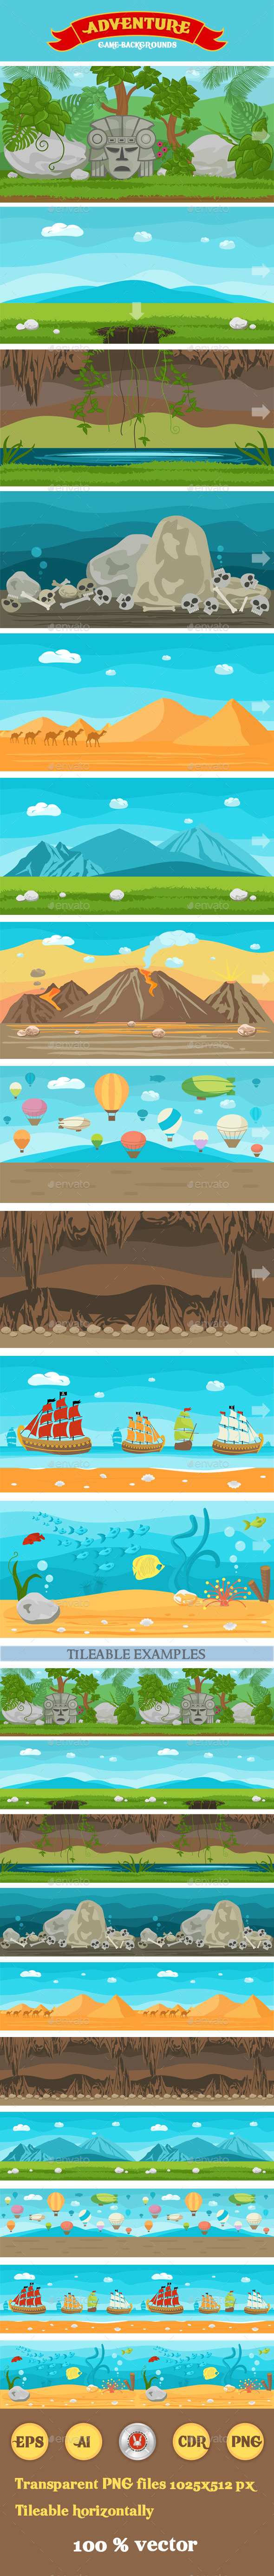 GraphicRiver 11 Adventure Themed Game Backgrounds 8811170